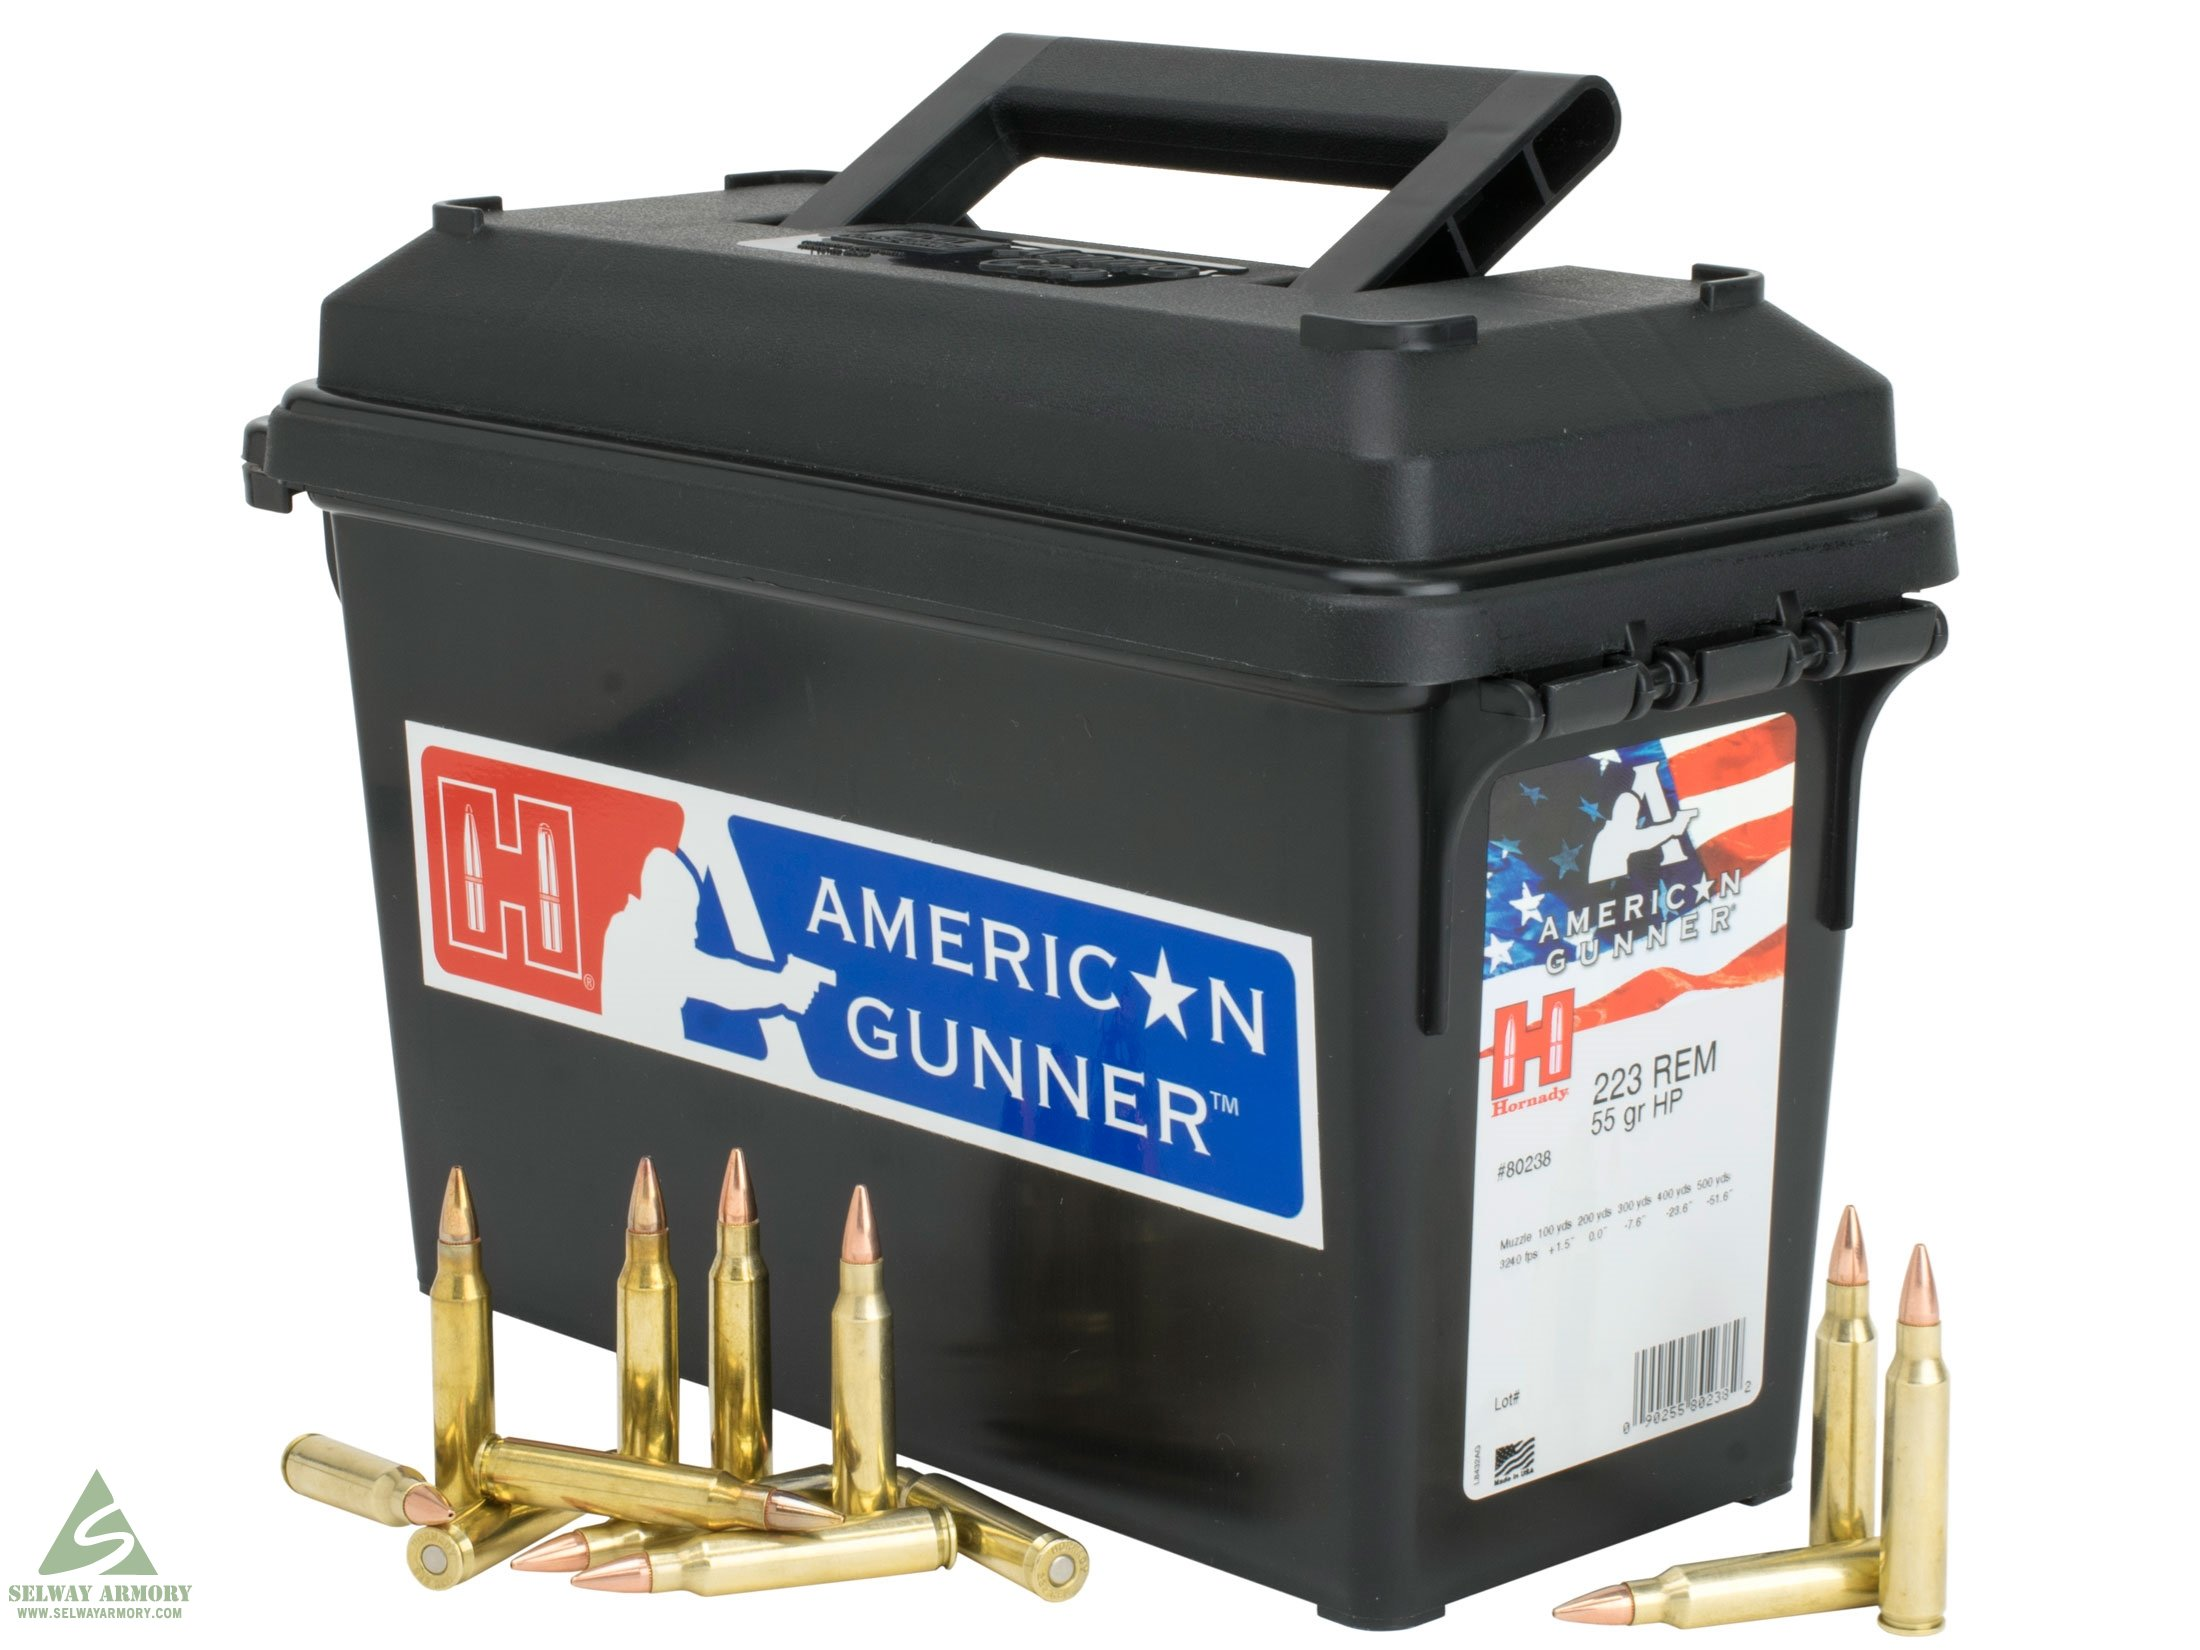 Hornady American Gunner .223 Remington 55 Gr. Hollow Point 80238